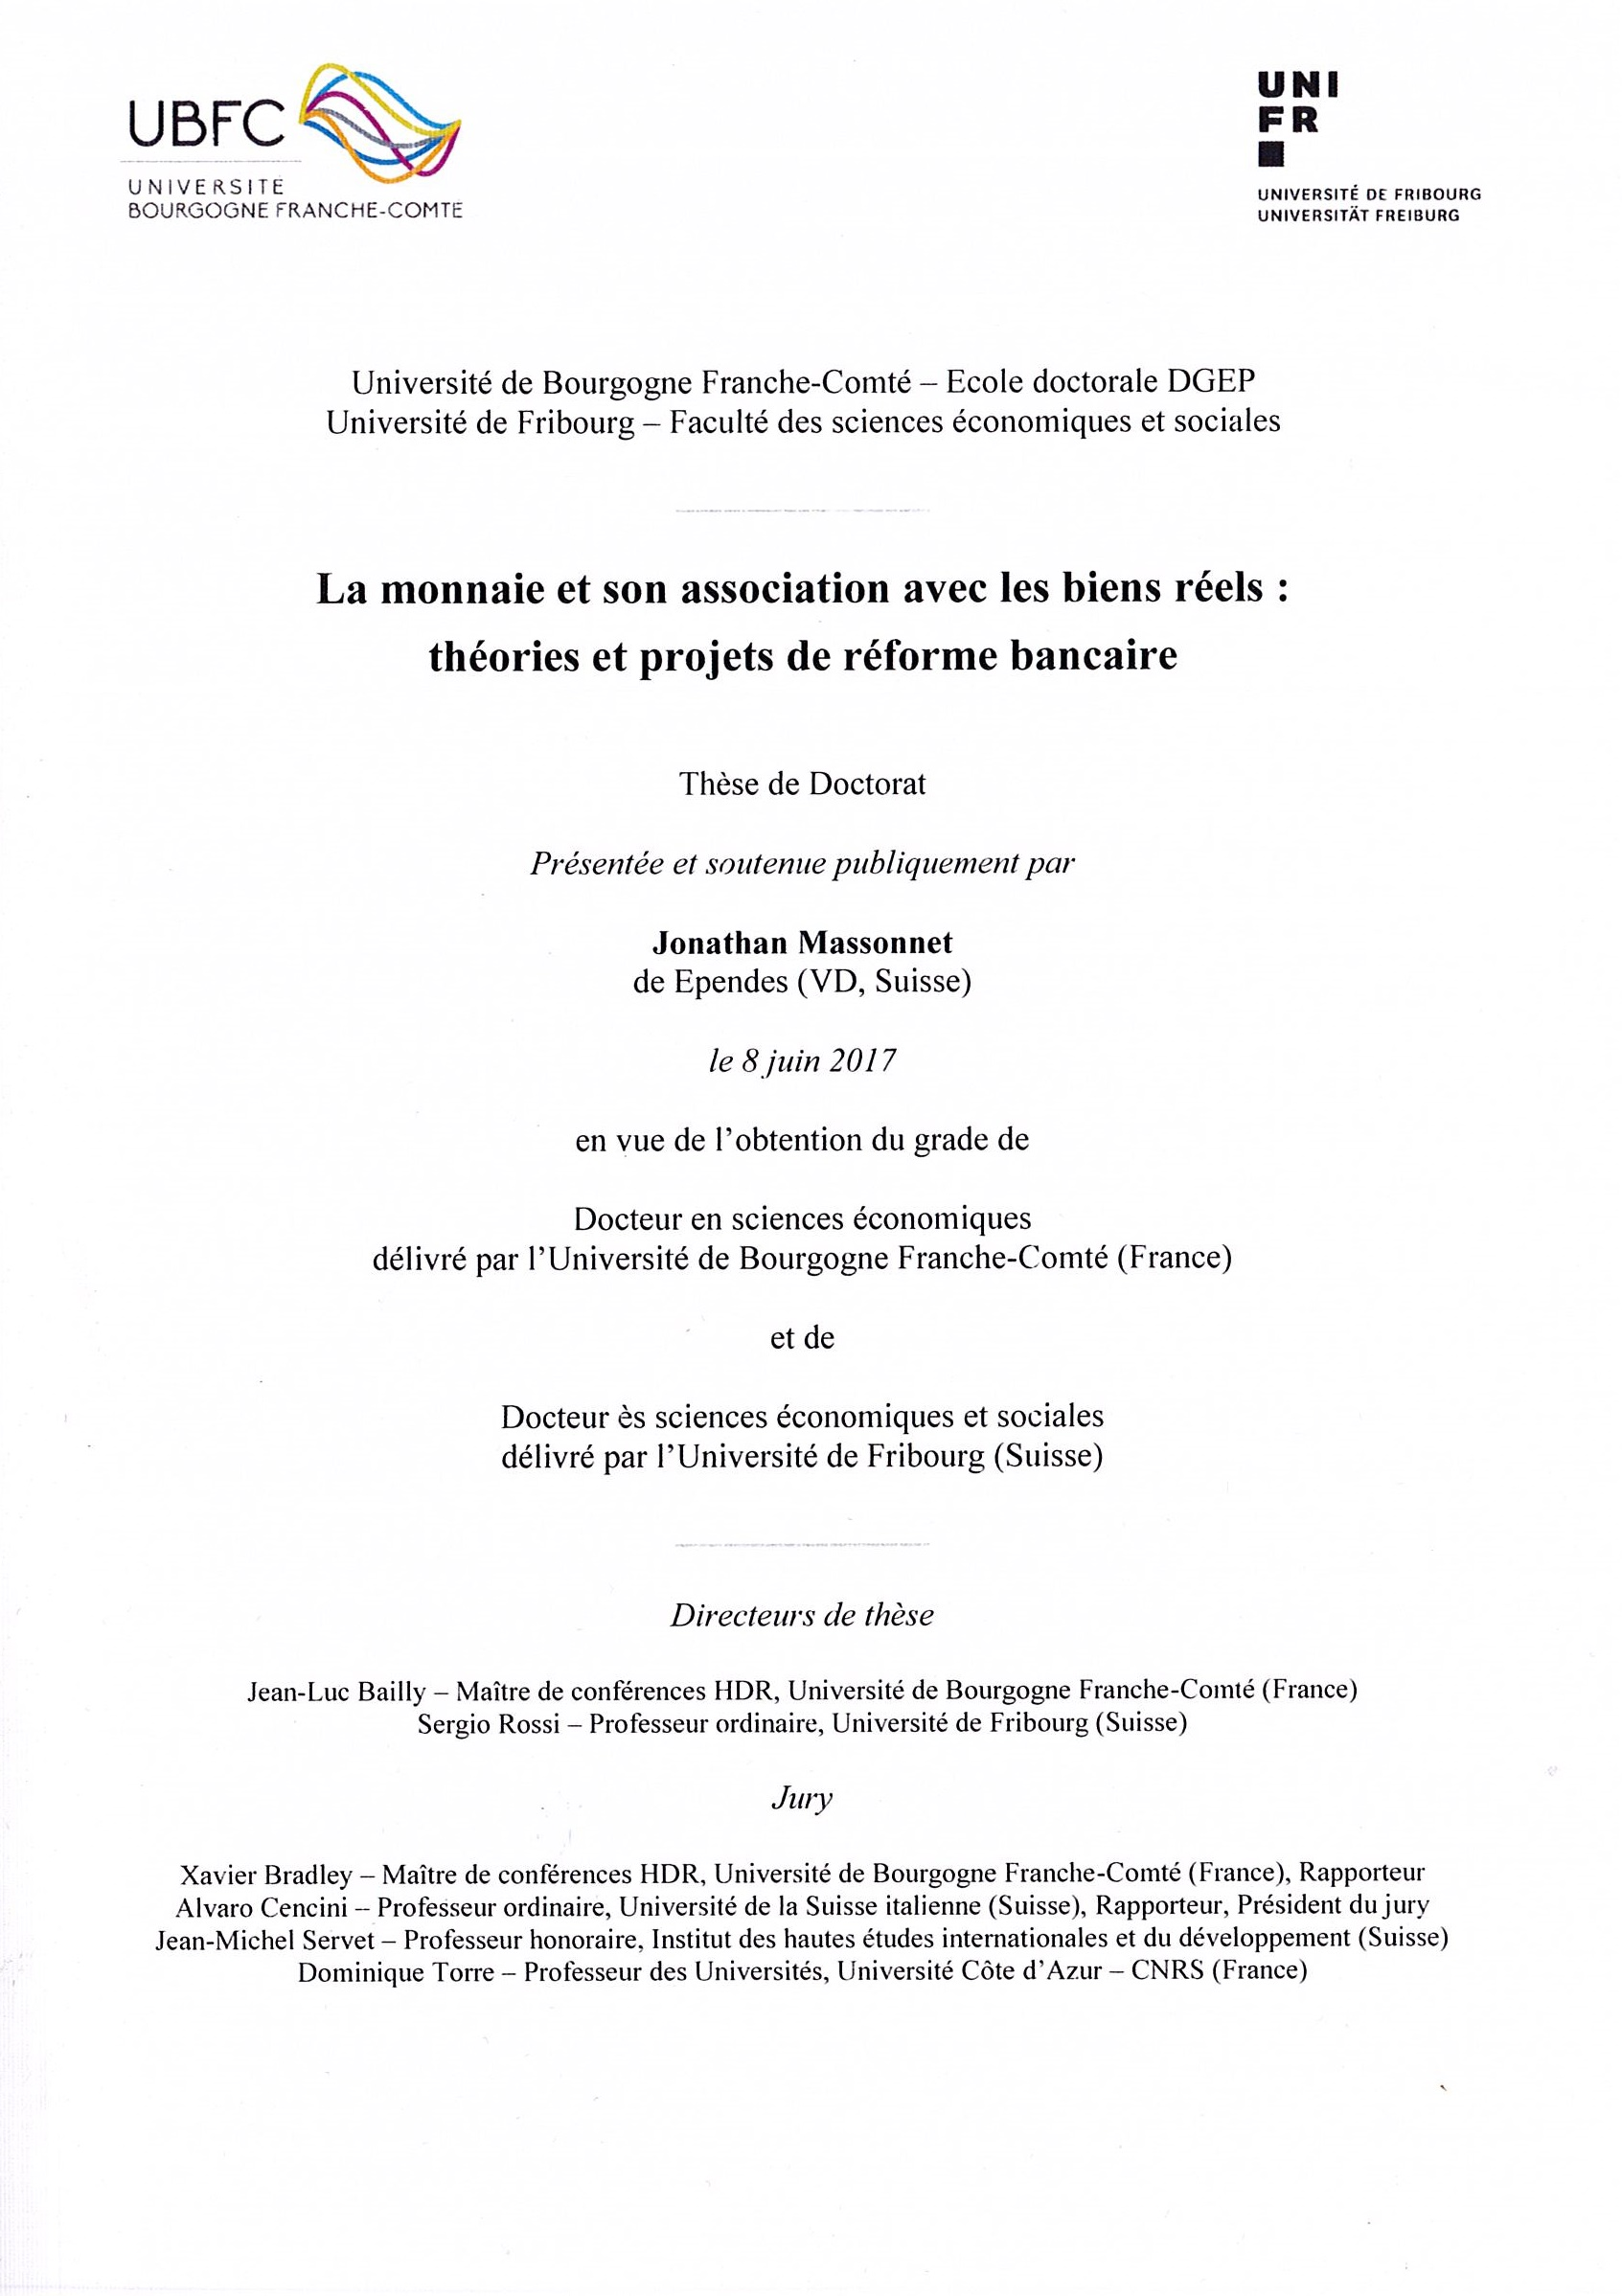 faculty of economics and social sciences theses publiees theses published